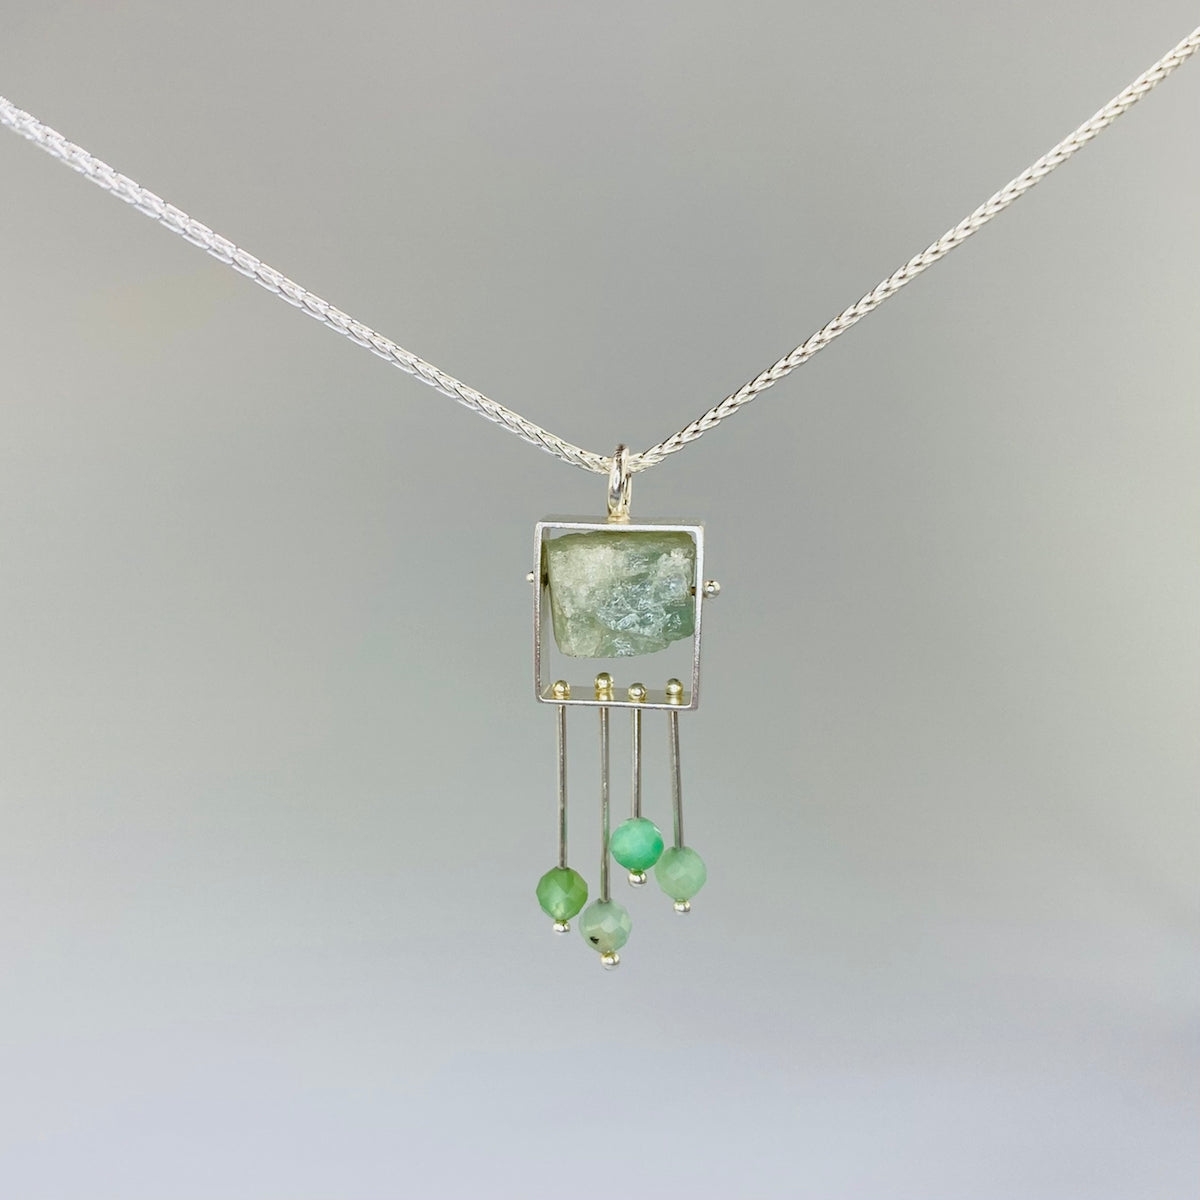 Aquamarine Pendant with Chrysoprase Fringe - Heart of the Home PA